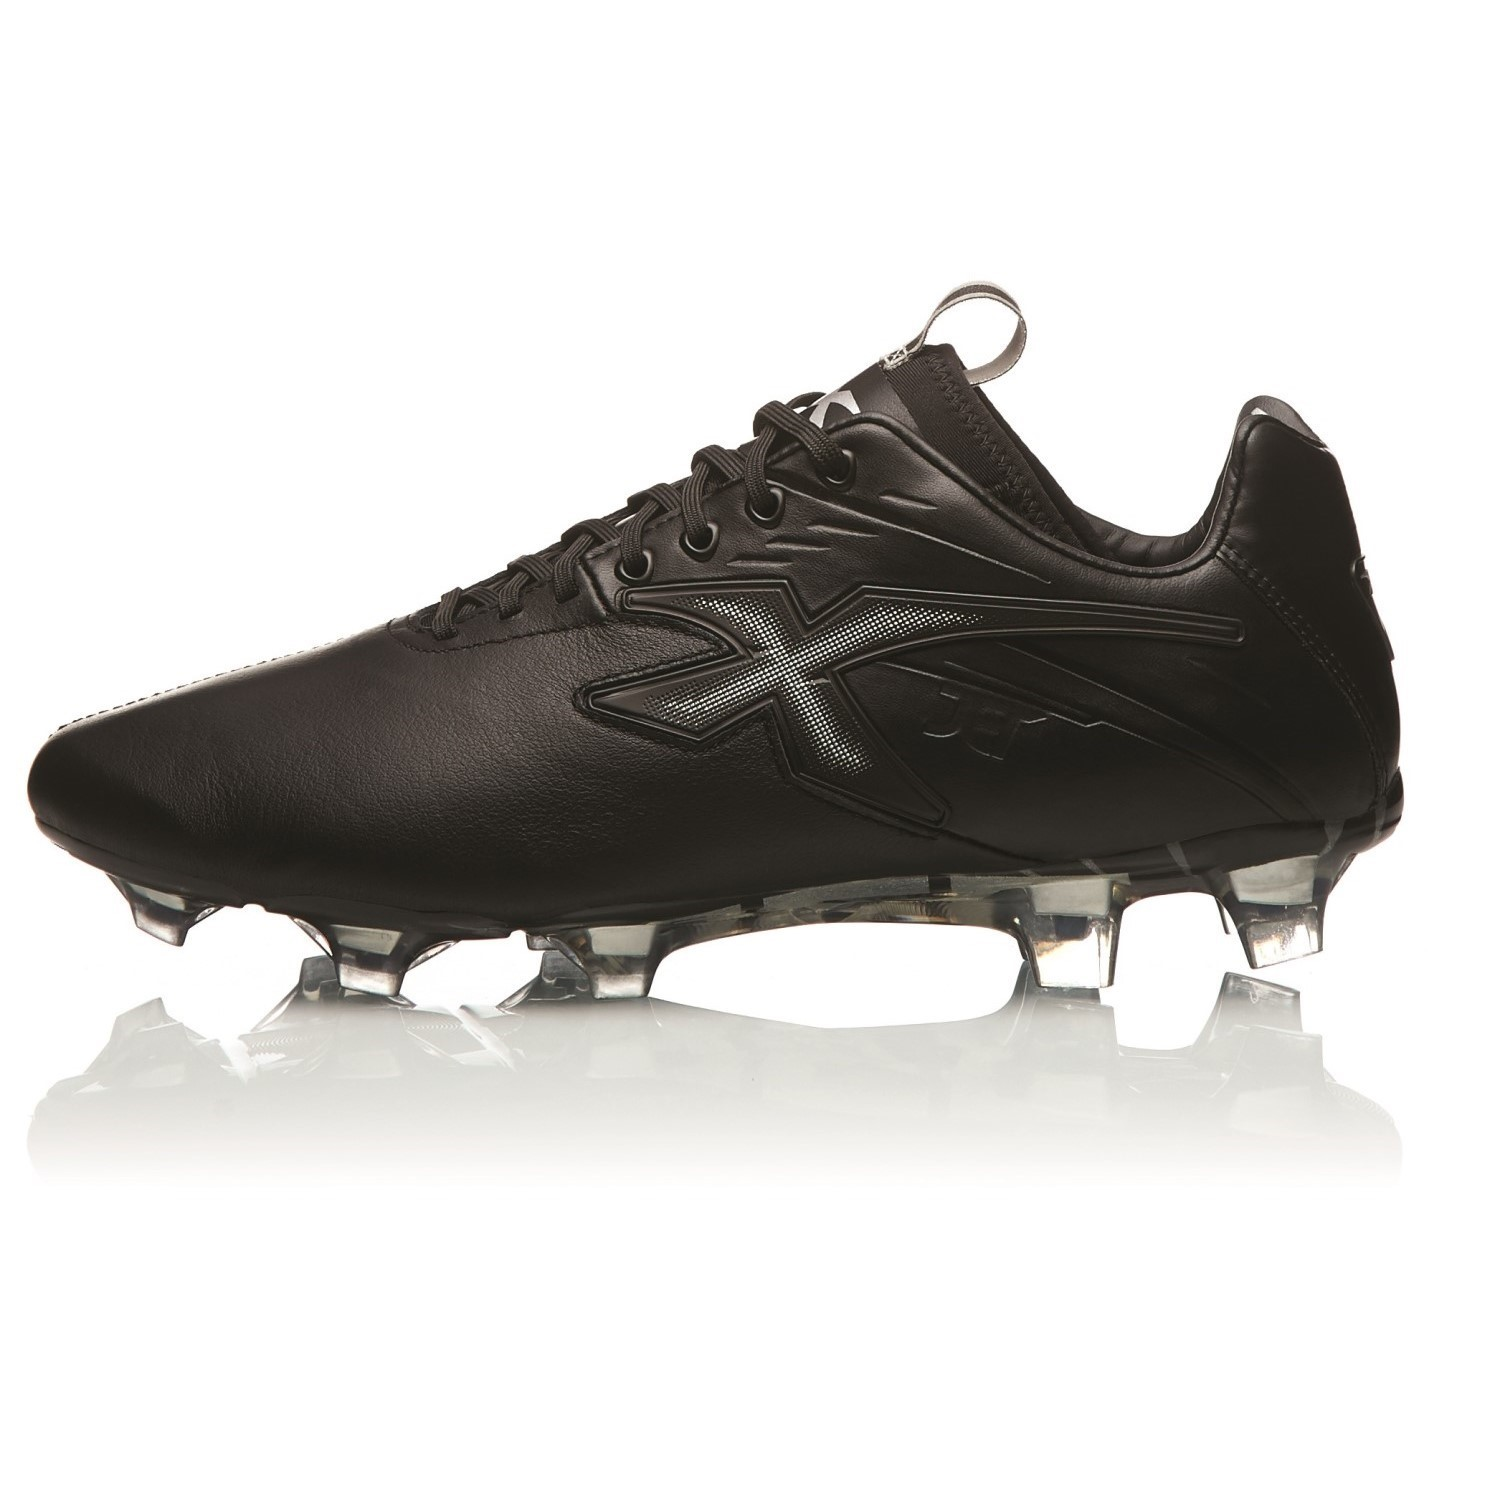 70958a9ba XBlades Jet III 19 - Mens Football Boots - Black | Sportitude